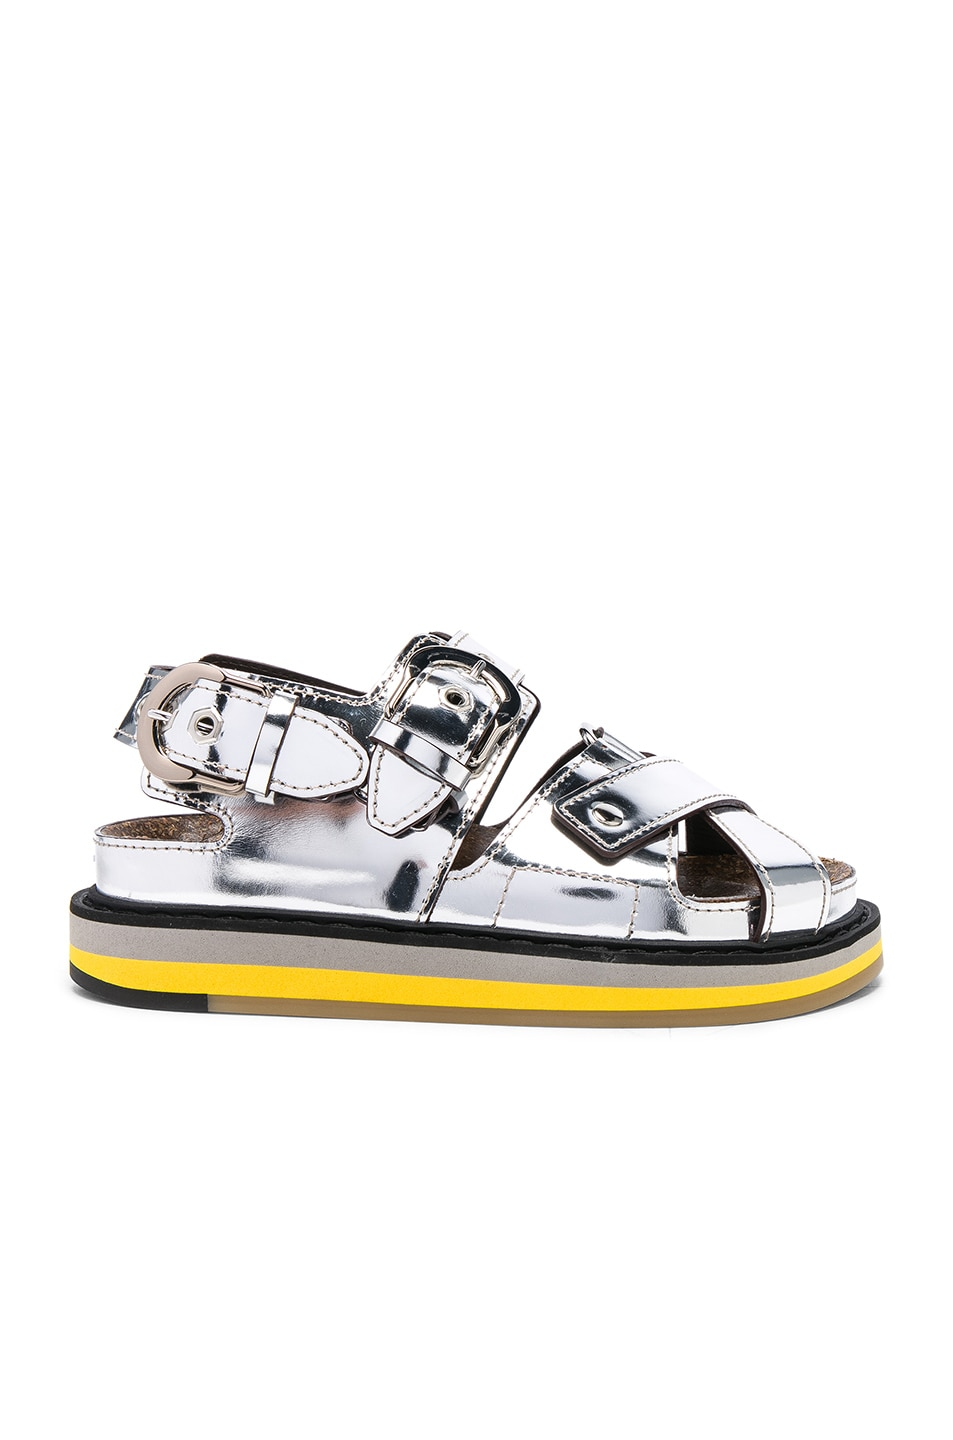 Image 1 of Maison Margiela Mirror Leather Sandals in Silver